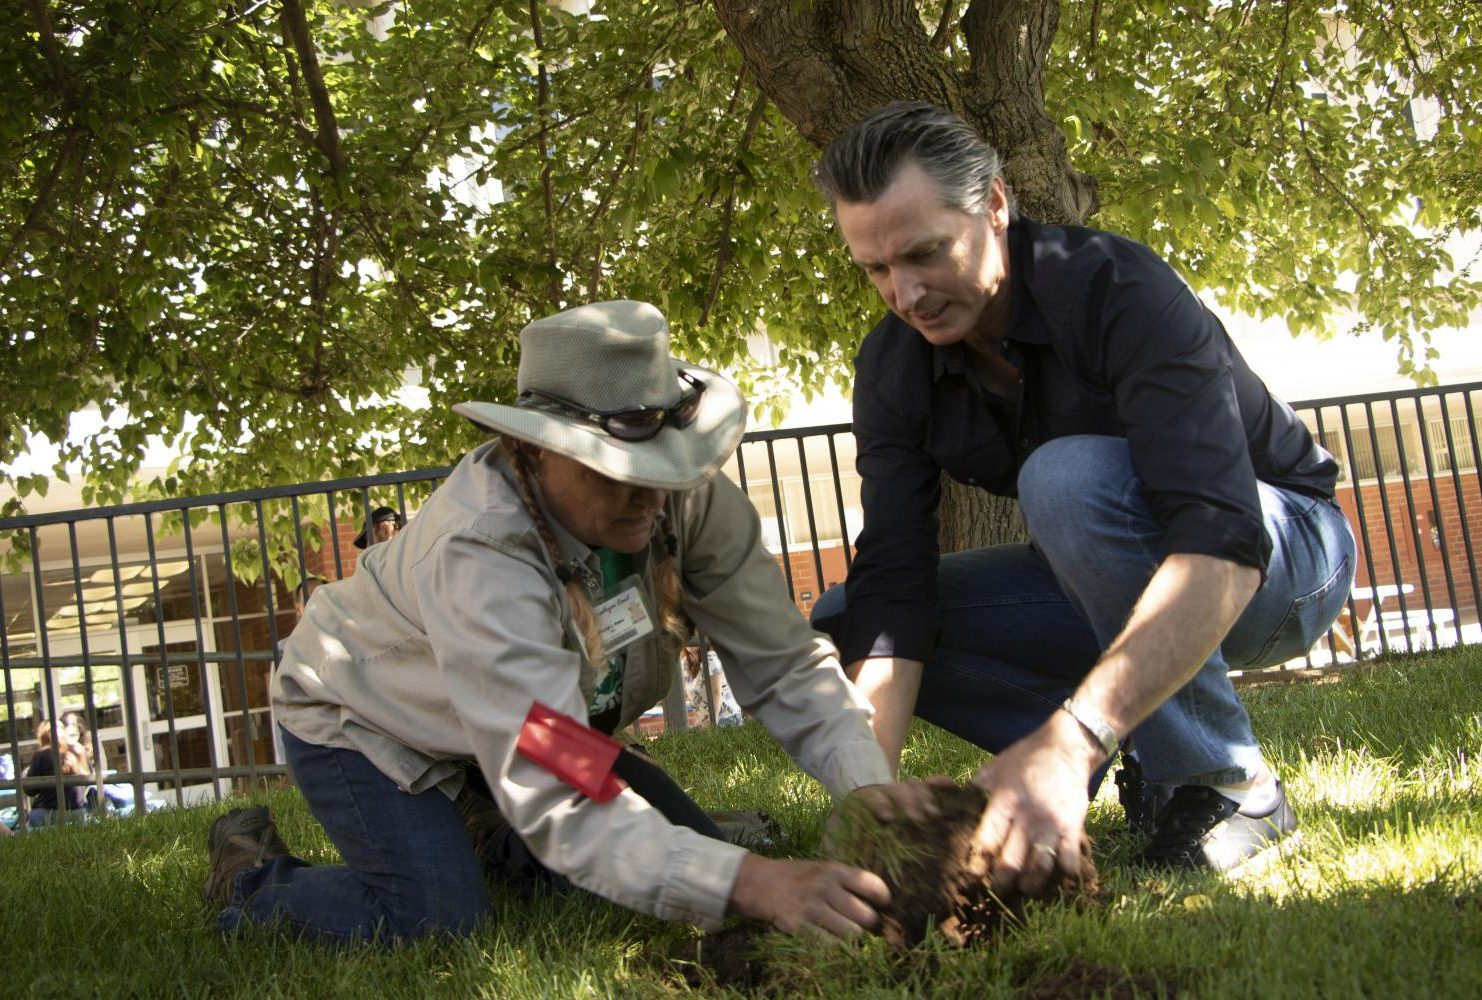 Governor Gavin Christopher Newsom assist American River College groundskeeper Brenda Baker with fixing the sprinkler at American River College during International Workers' Day on May 1, 2019. (Photo by Ashley Hayes-Stone)